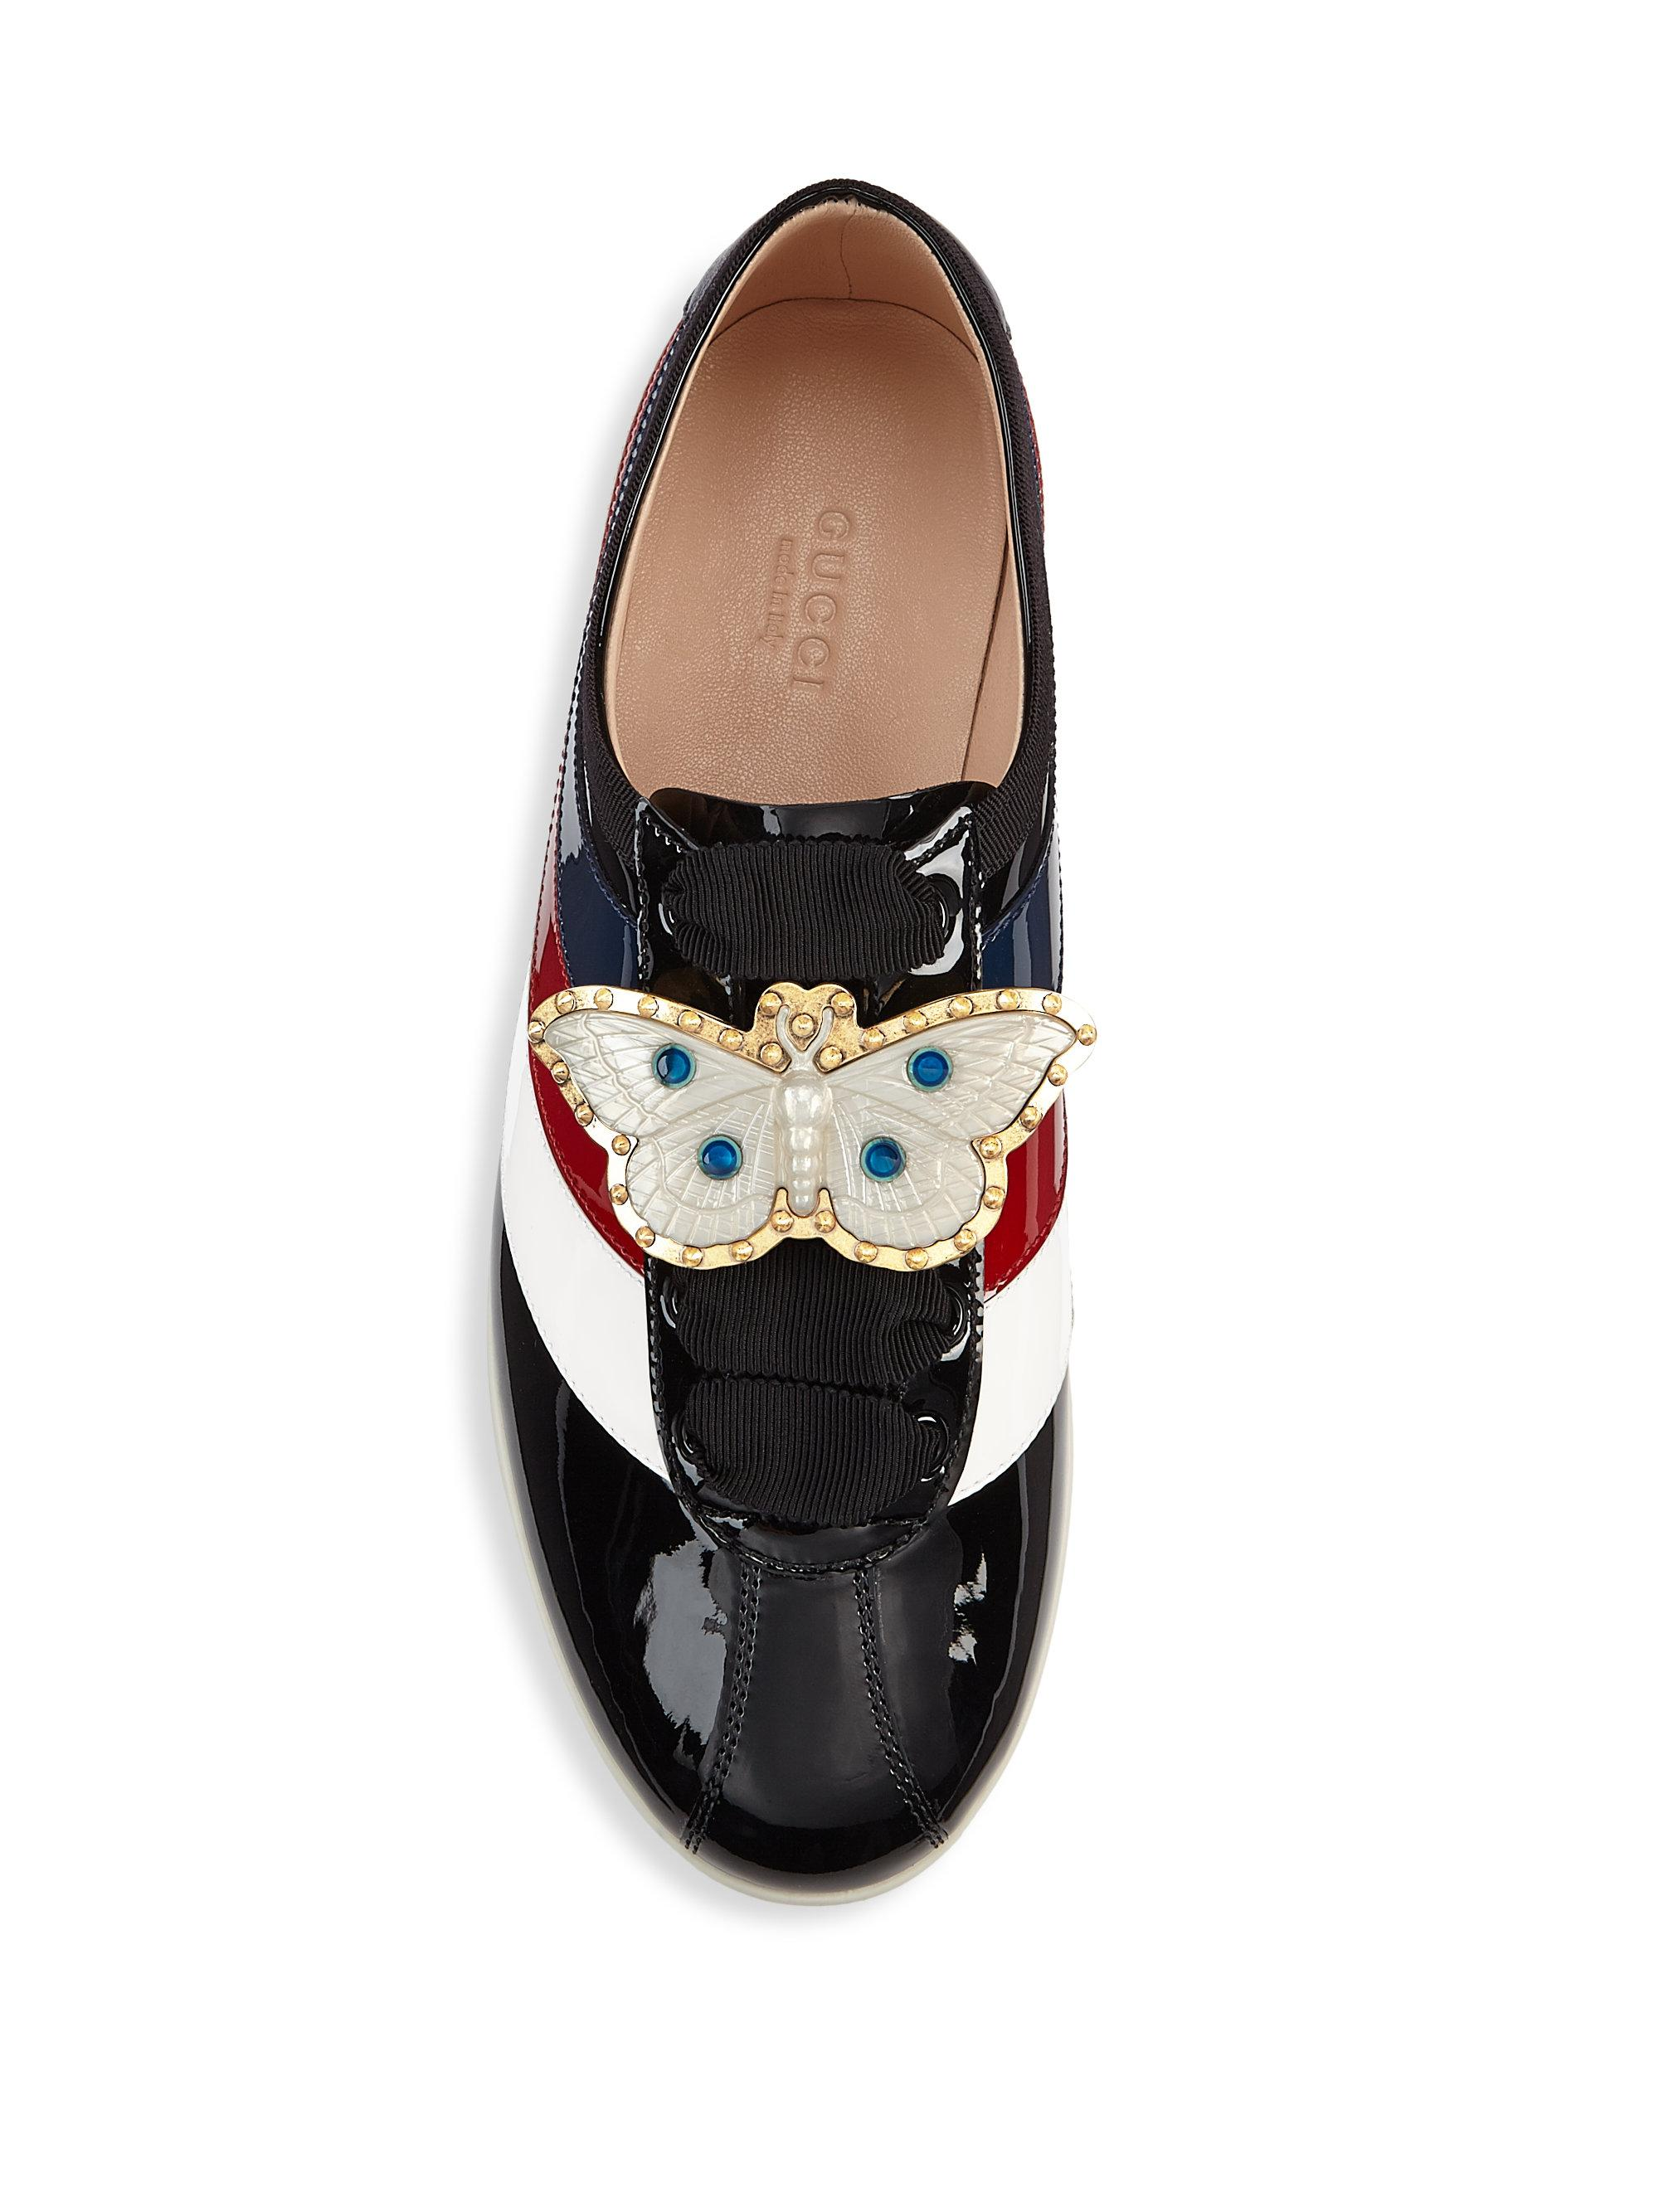 d420232730b Gucci Bee Ornament Patent Leather Sneakers in Black - Lyst